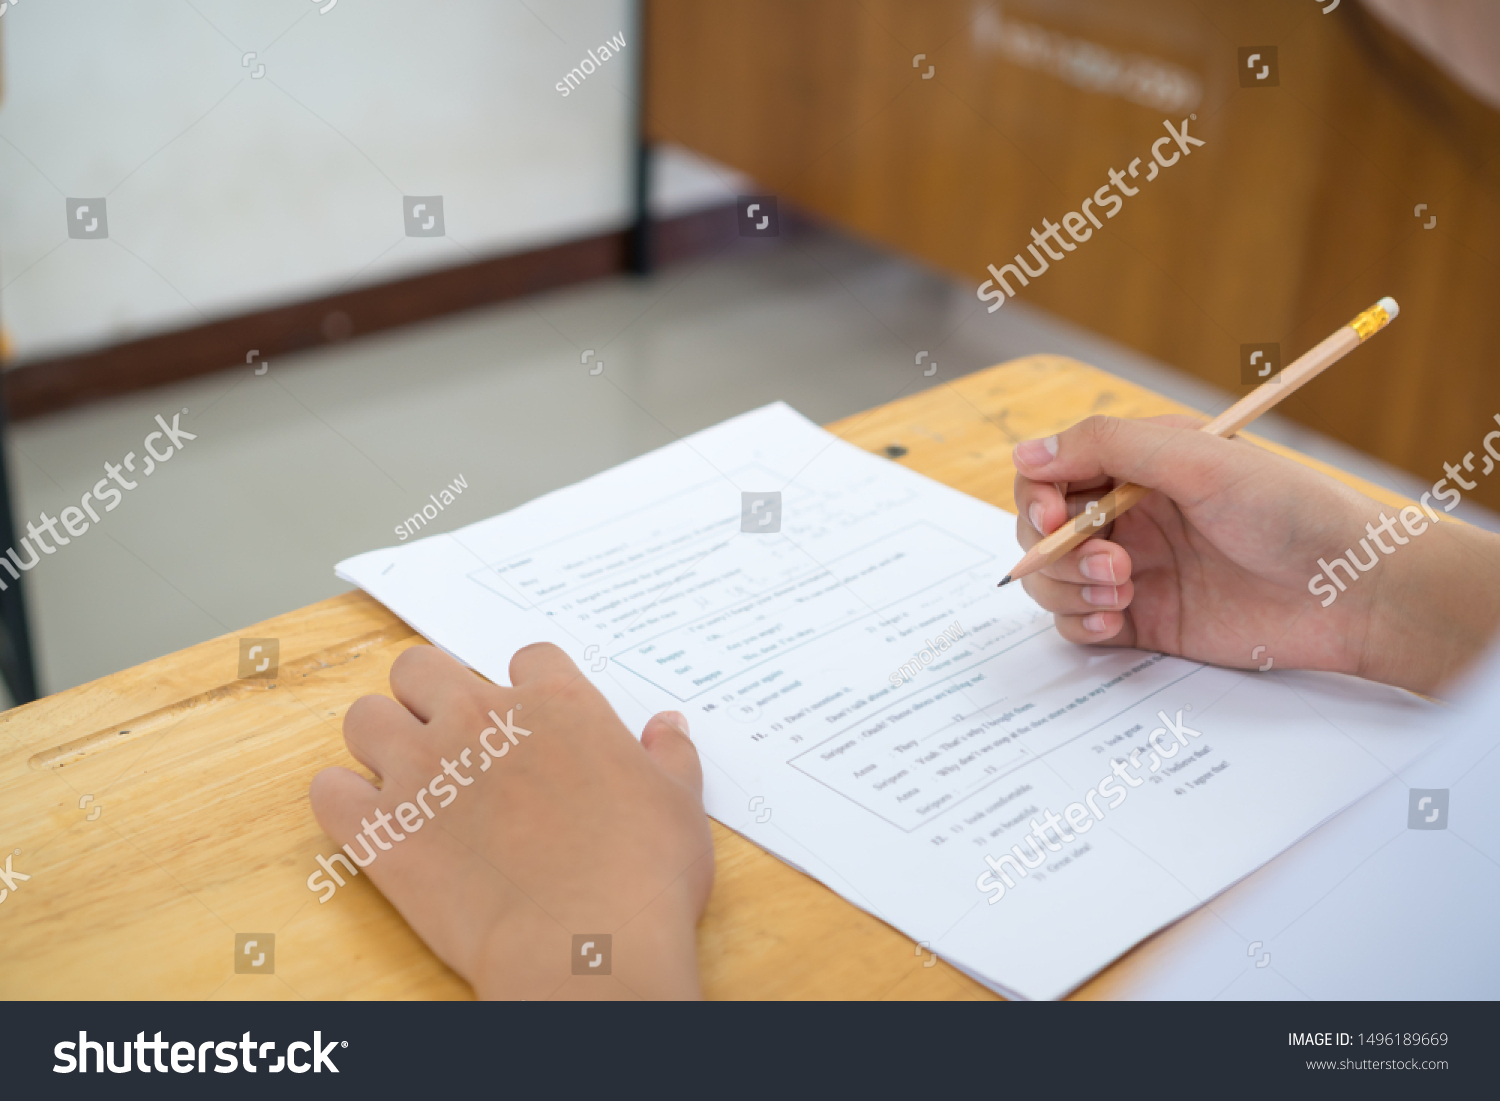 English exams test student in school, university students holding pencil for testing exam writing answer sheet or exercise for taking in assessment paper on table classroom. Education study Concept #1496189669